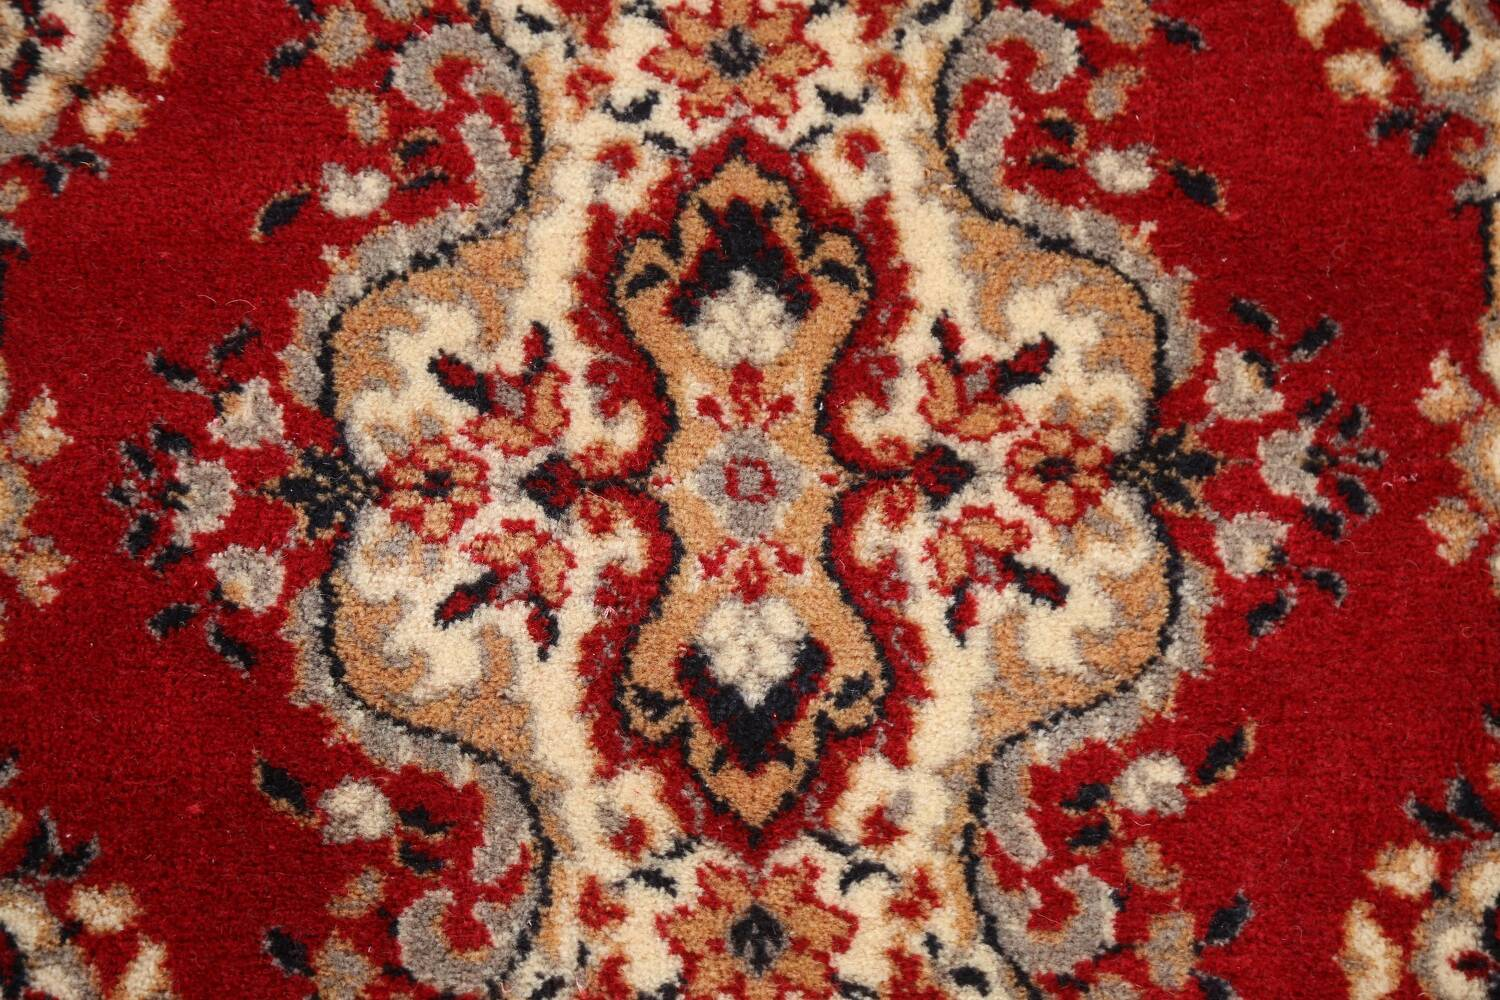 Red Floral Aubusson Oriental Rug 2x6 image 9